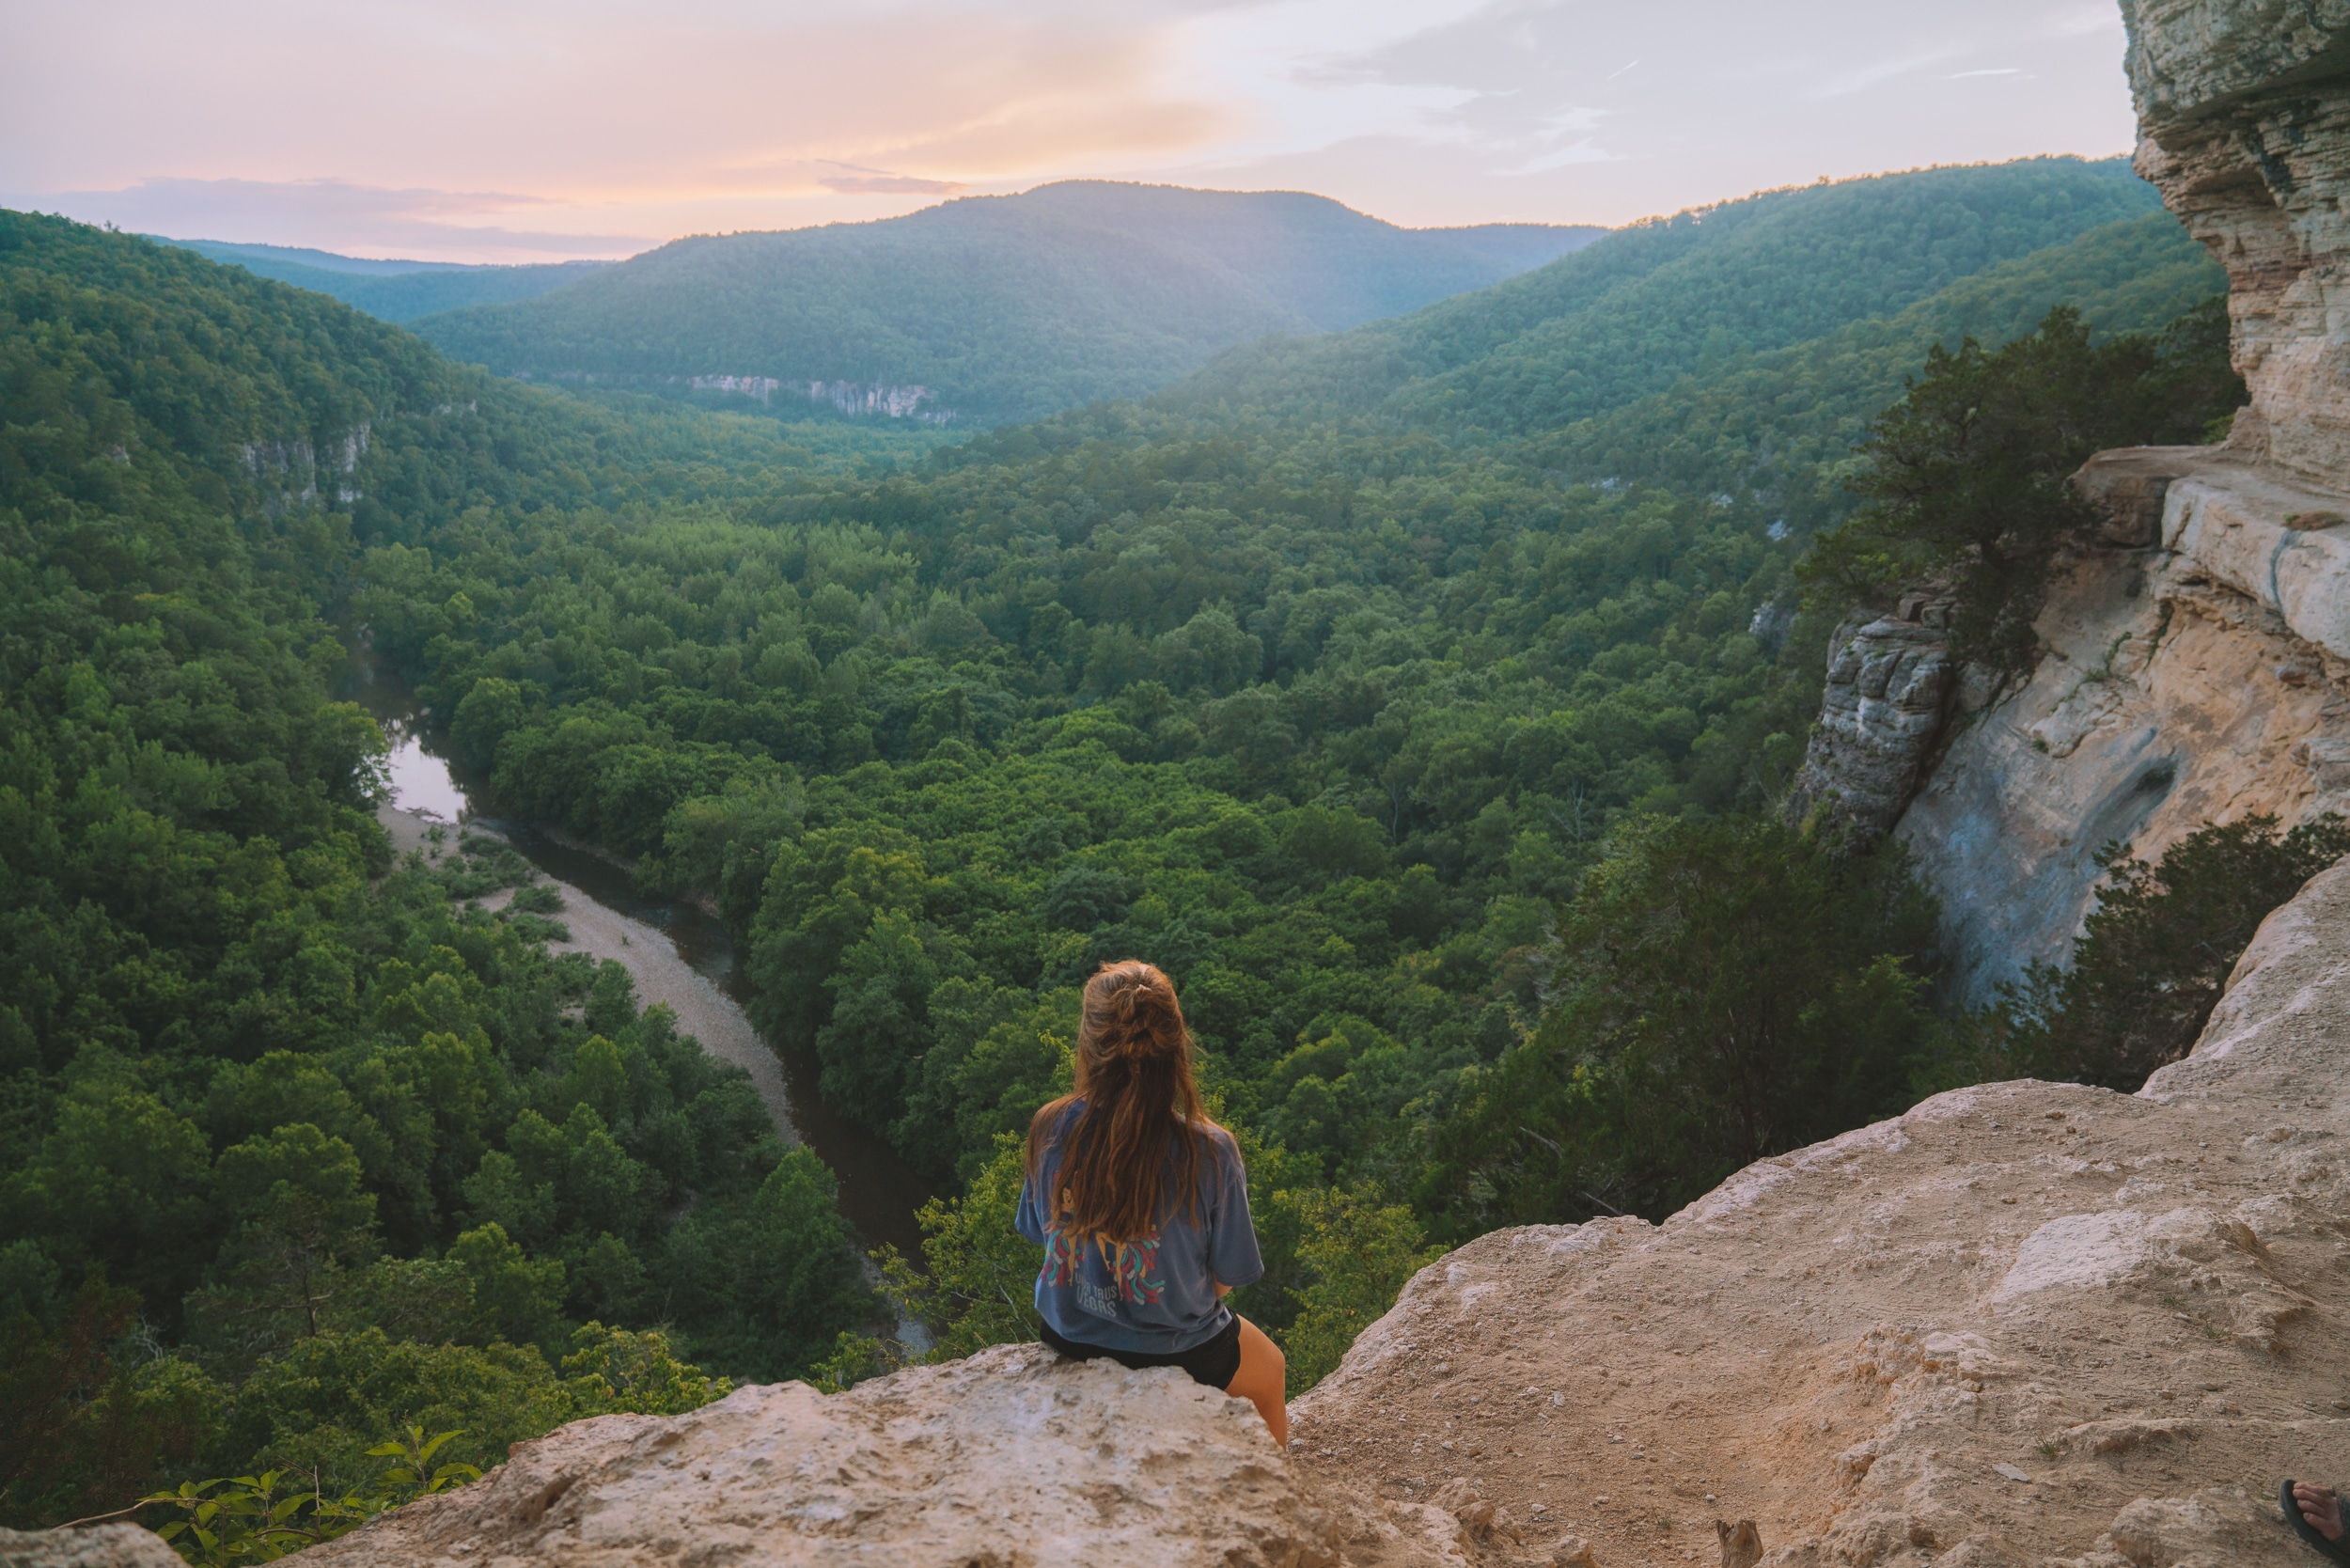 Sunset on Big Bluff along the Goat trail above the Buffalo River